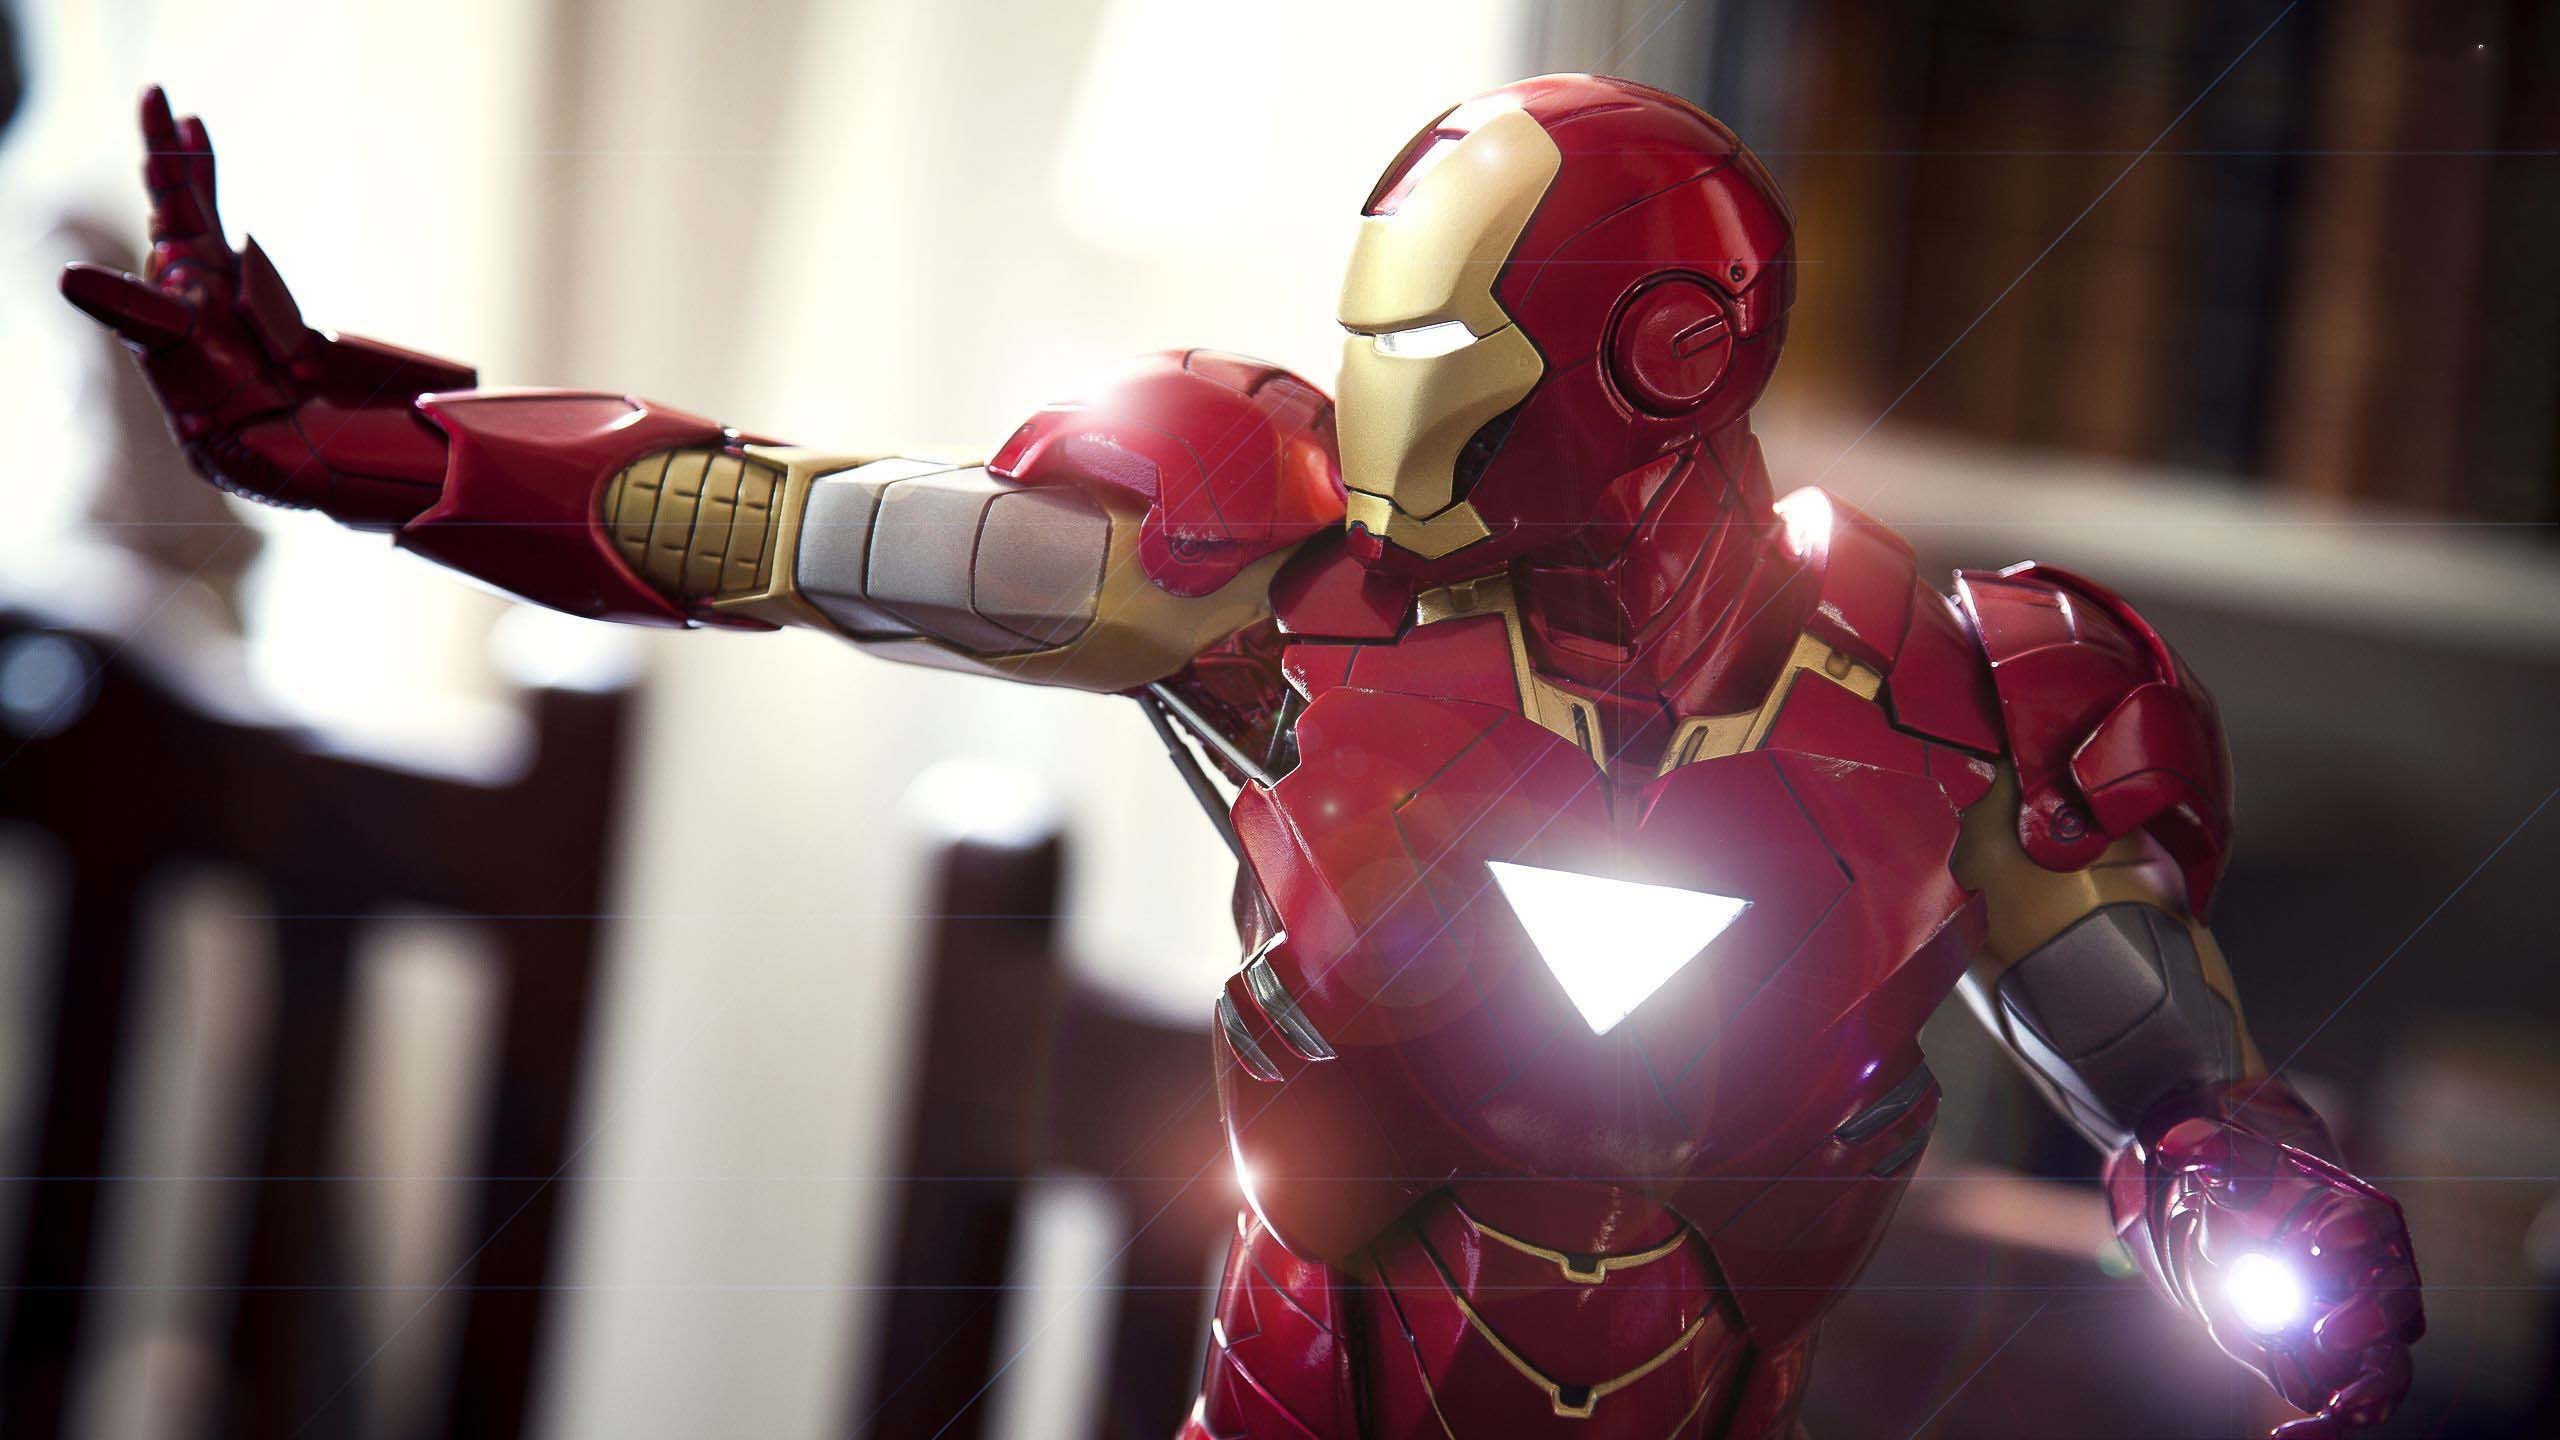 Iron Man Wallpaper 4k 2560x1440 Download Hd Wallpaper Wallpapertip